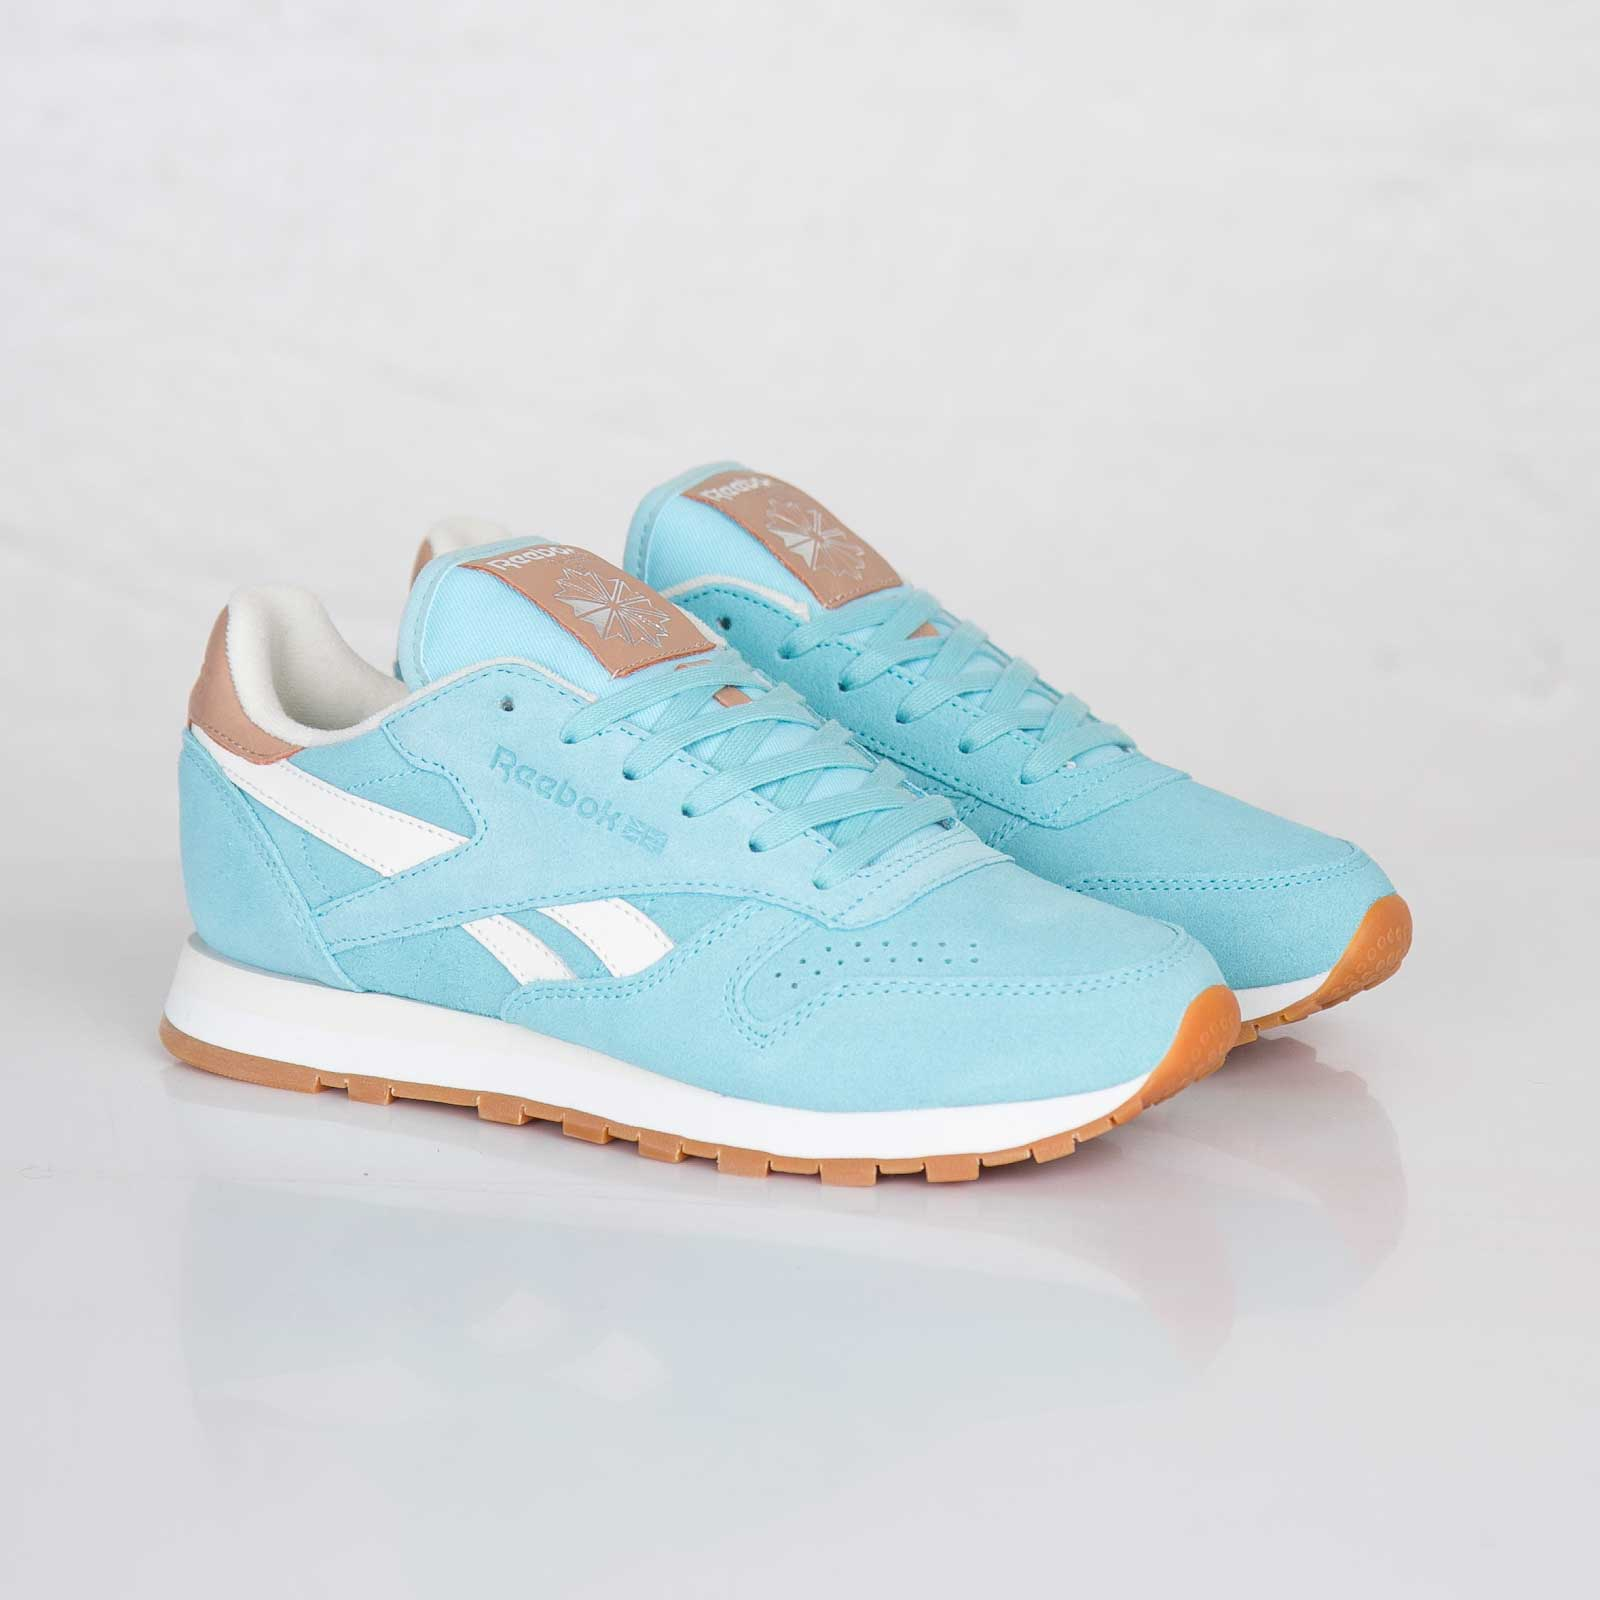 d302a7ff6 Reebok Classic Leather Suede - V55543 - Sneakersnstuff | sneakers ...